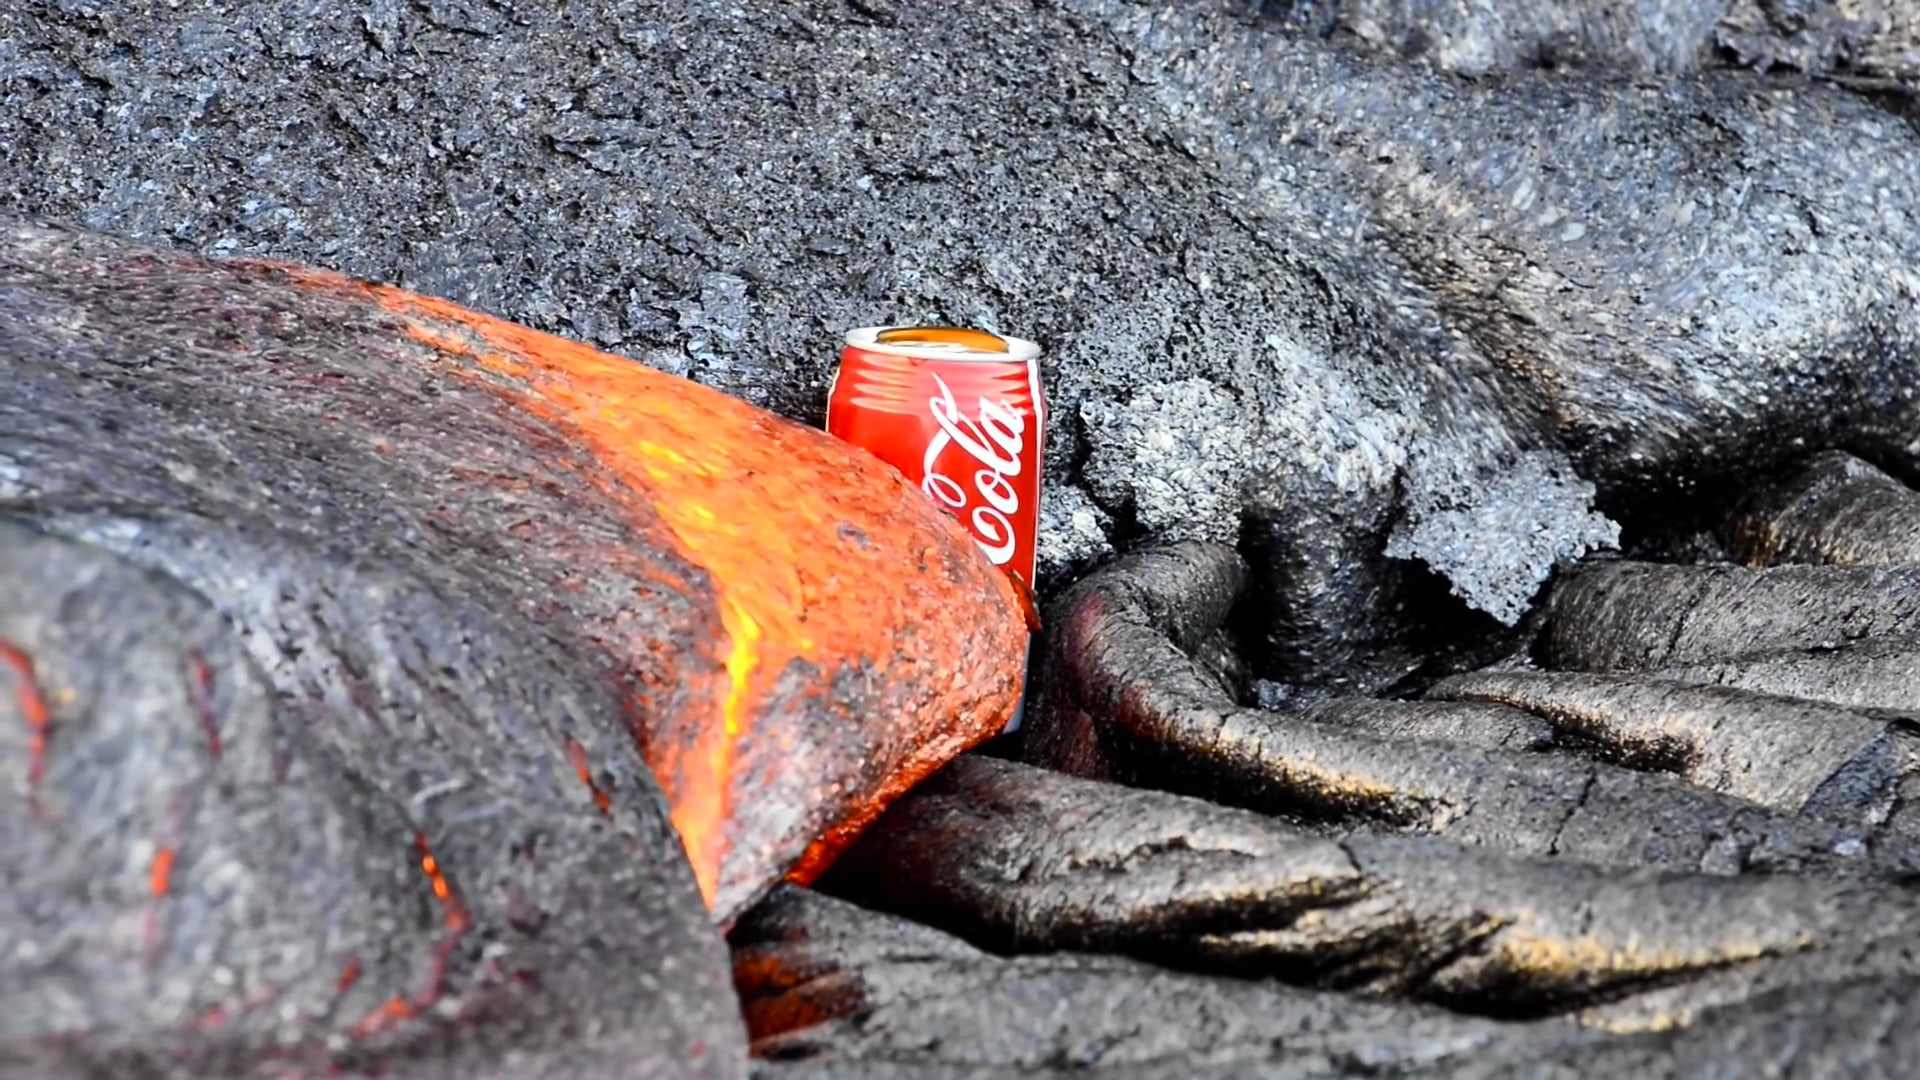 Why Can't I Look Away From This Lava Destroying A Coke Can?